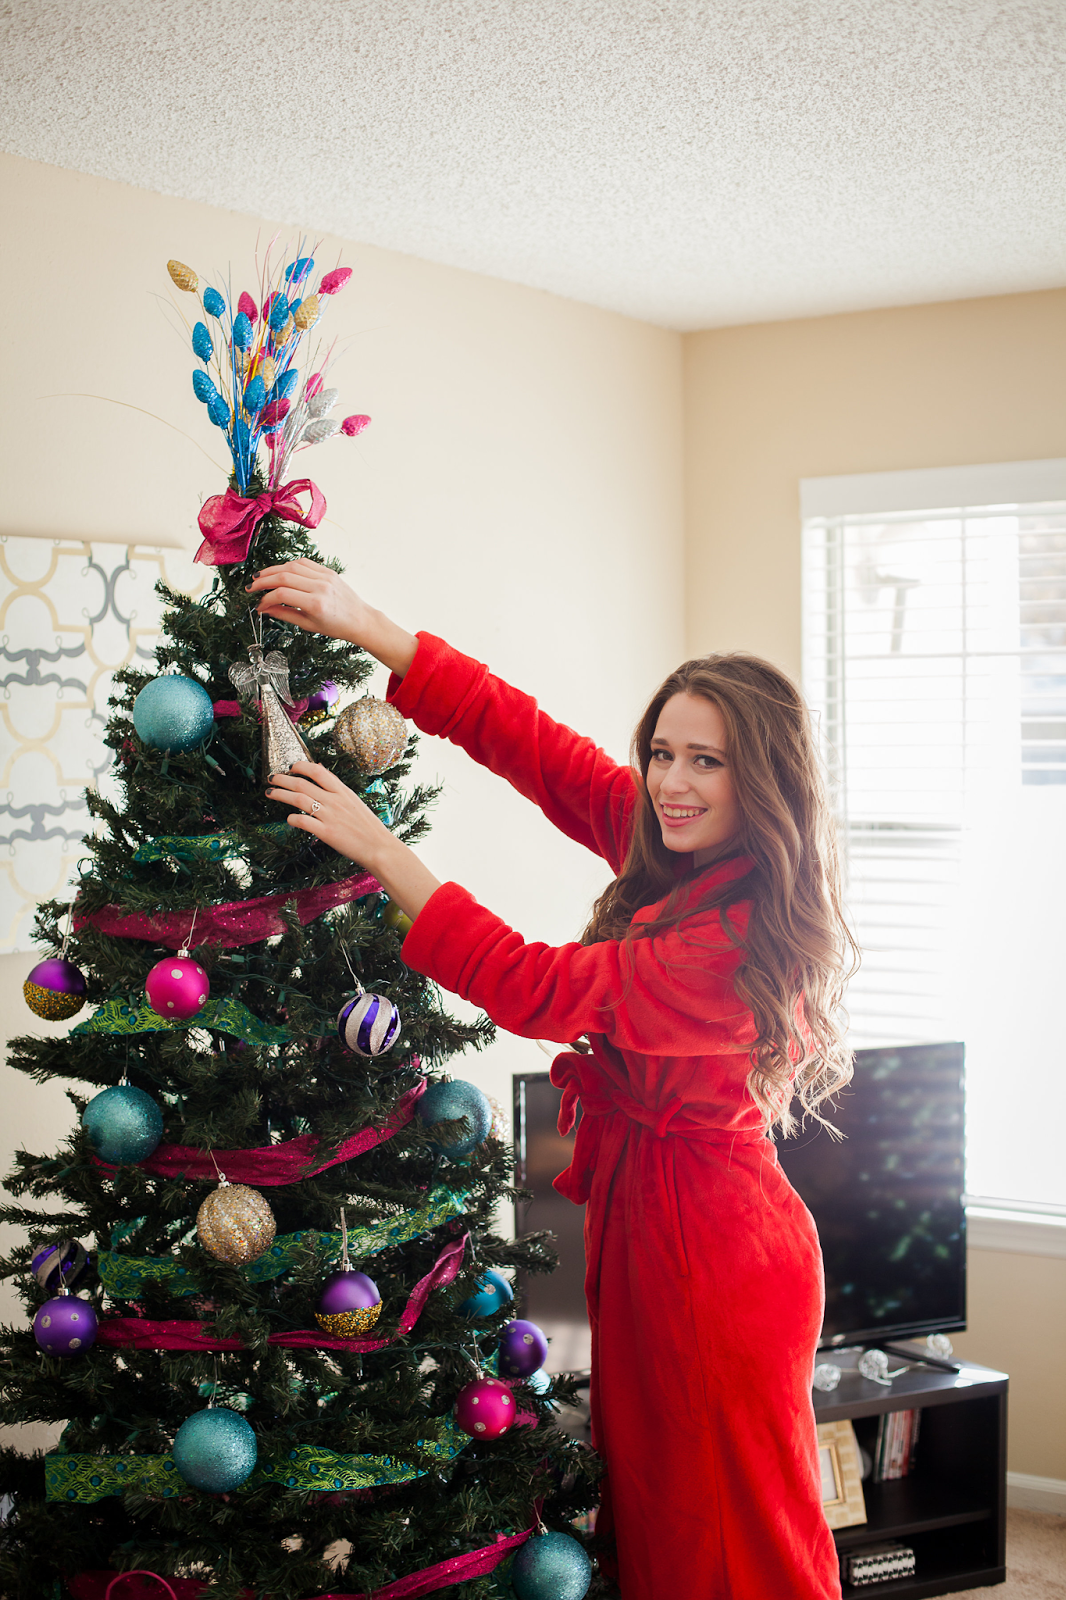 Decorating My First Christmas Tree. | Southern Belle in Training